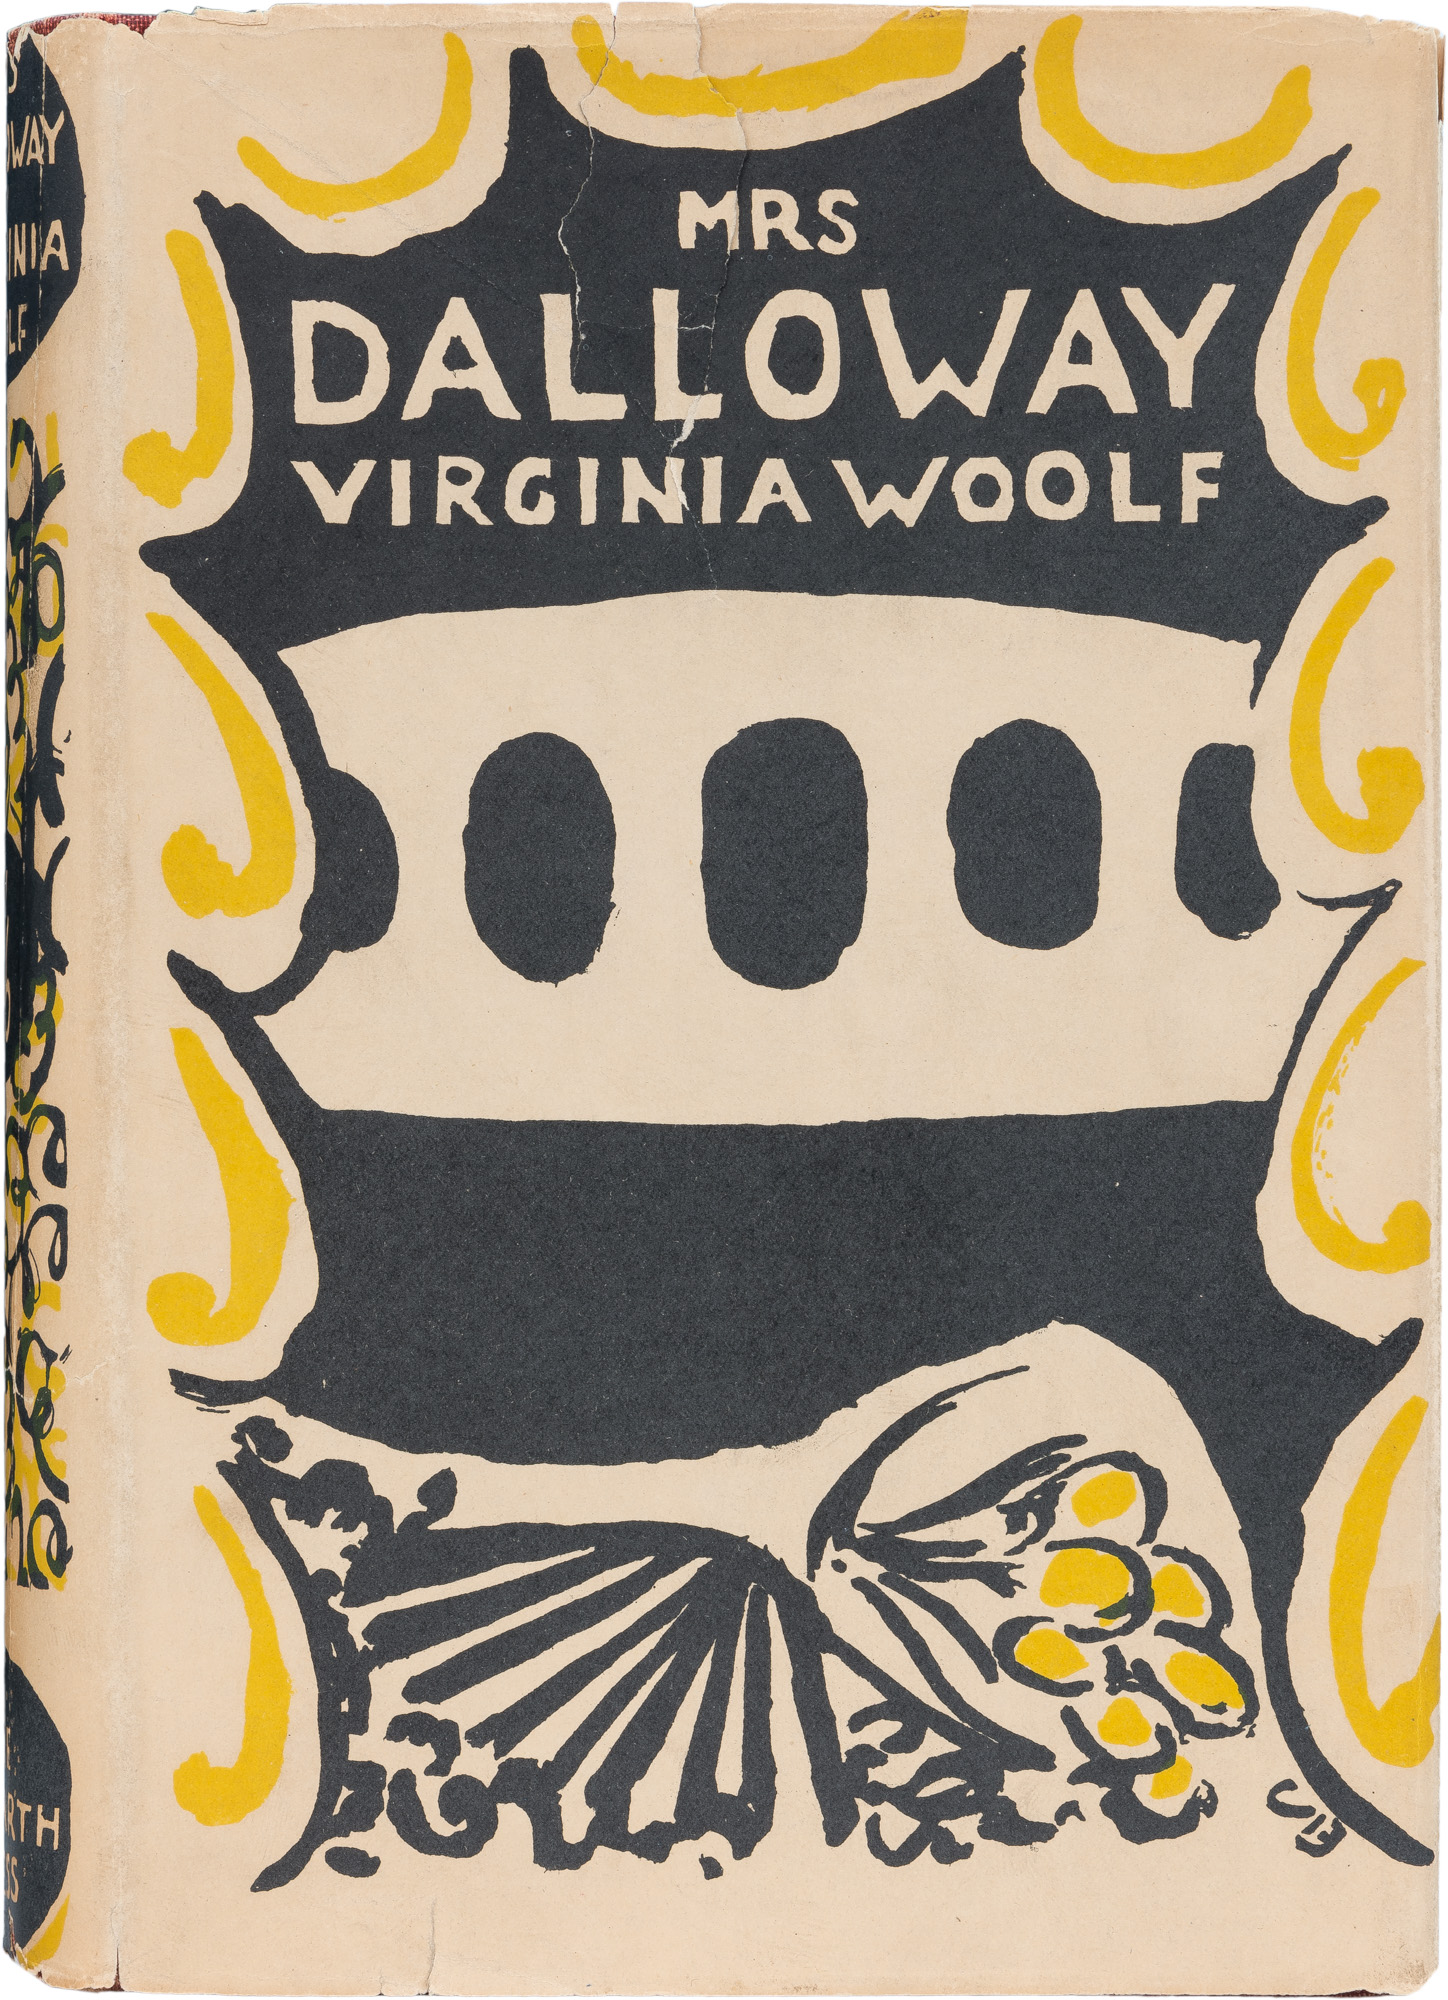 Image:Mrs. Dalloway cover.jpg